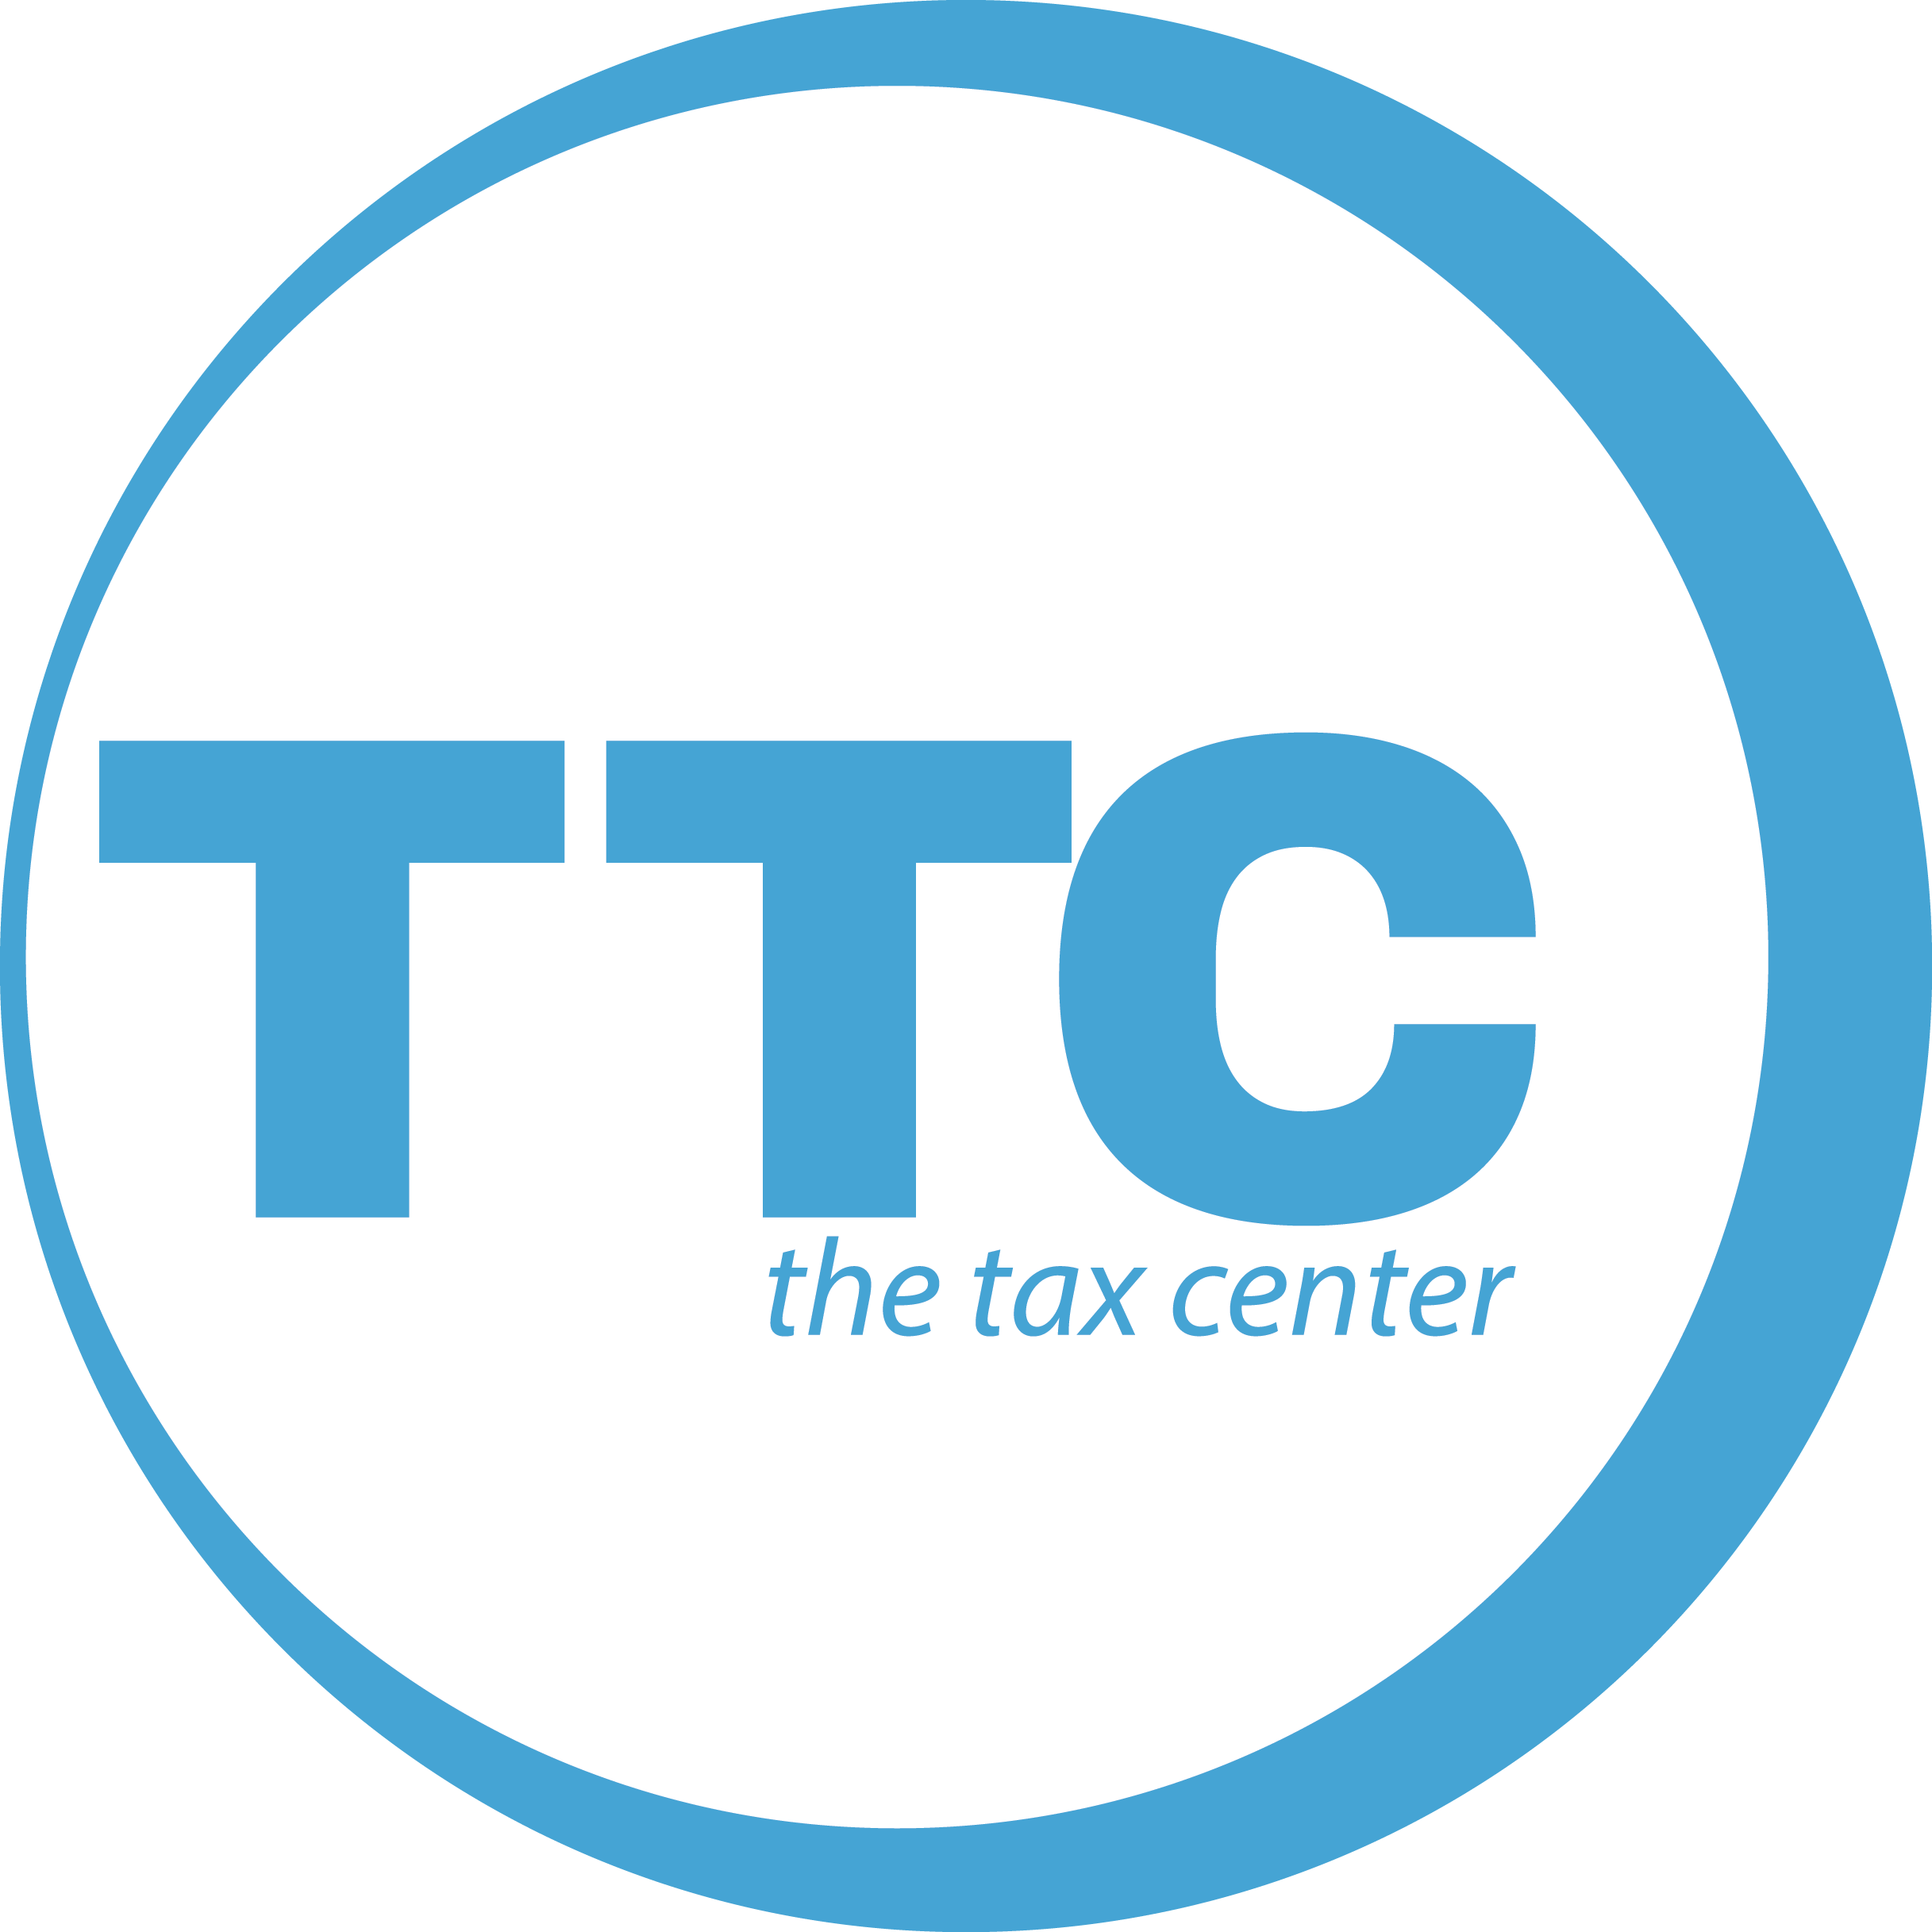 The Tax Center